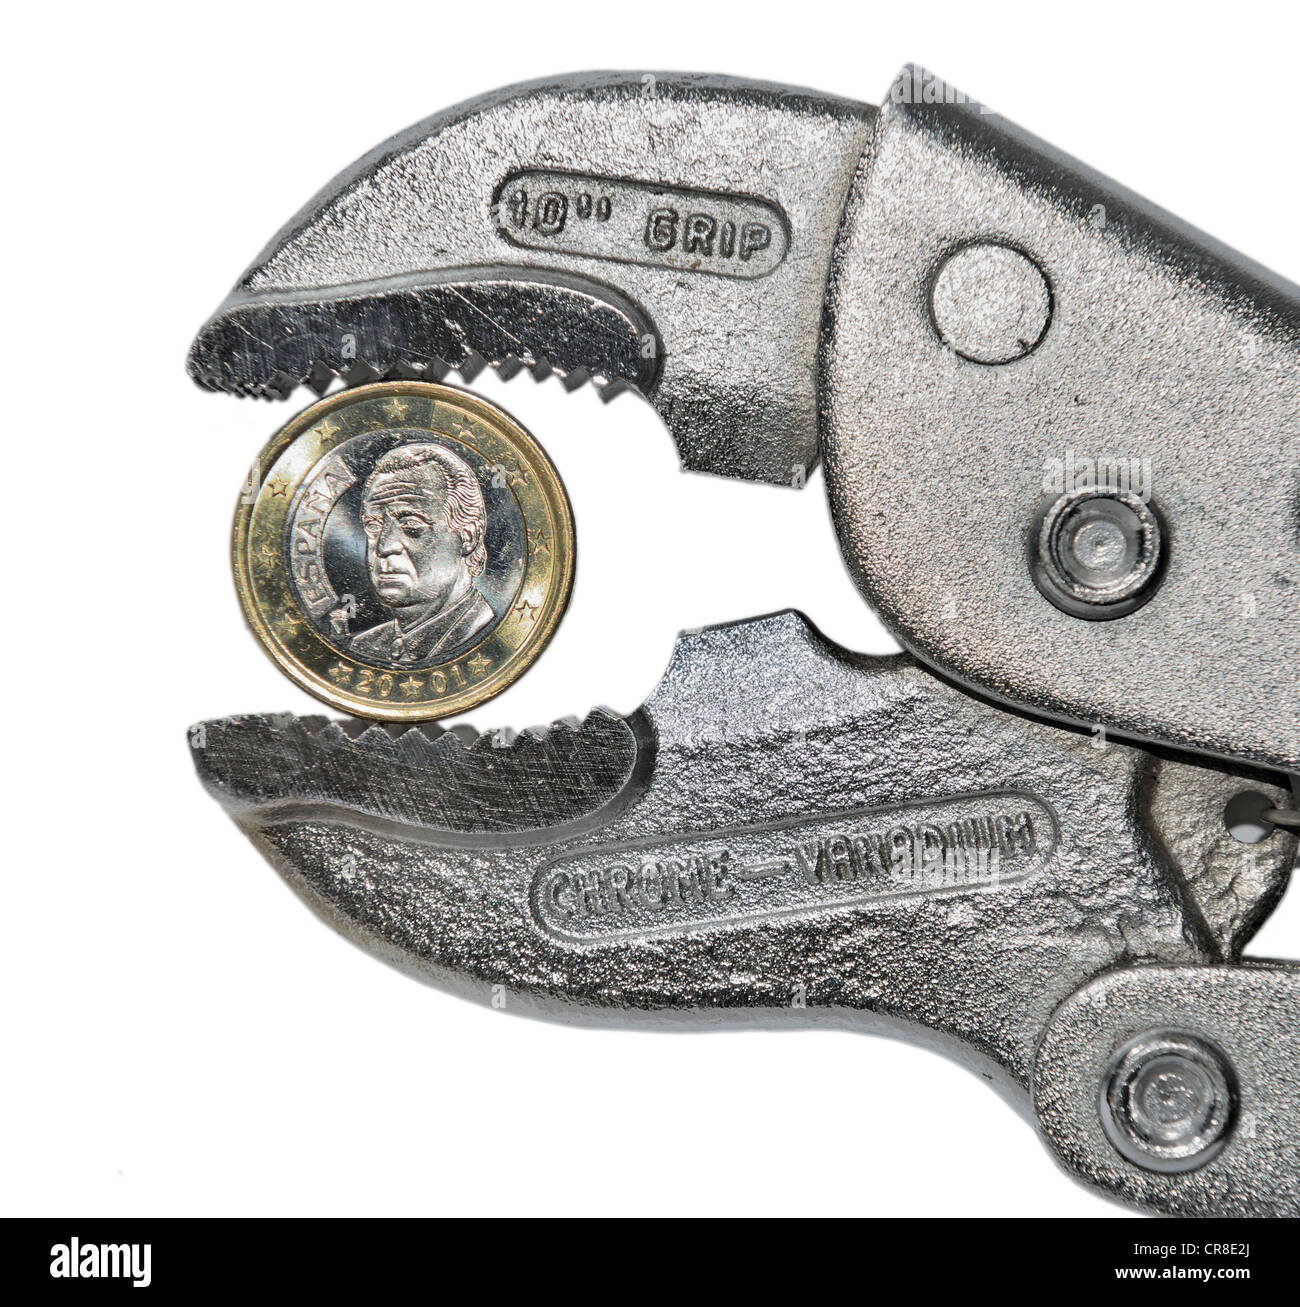 Spanish Euro Coin in a pair of Pliers - Stock Image